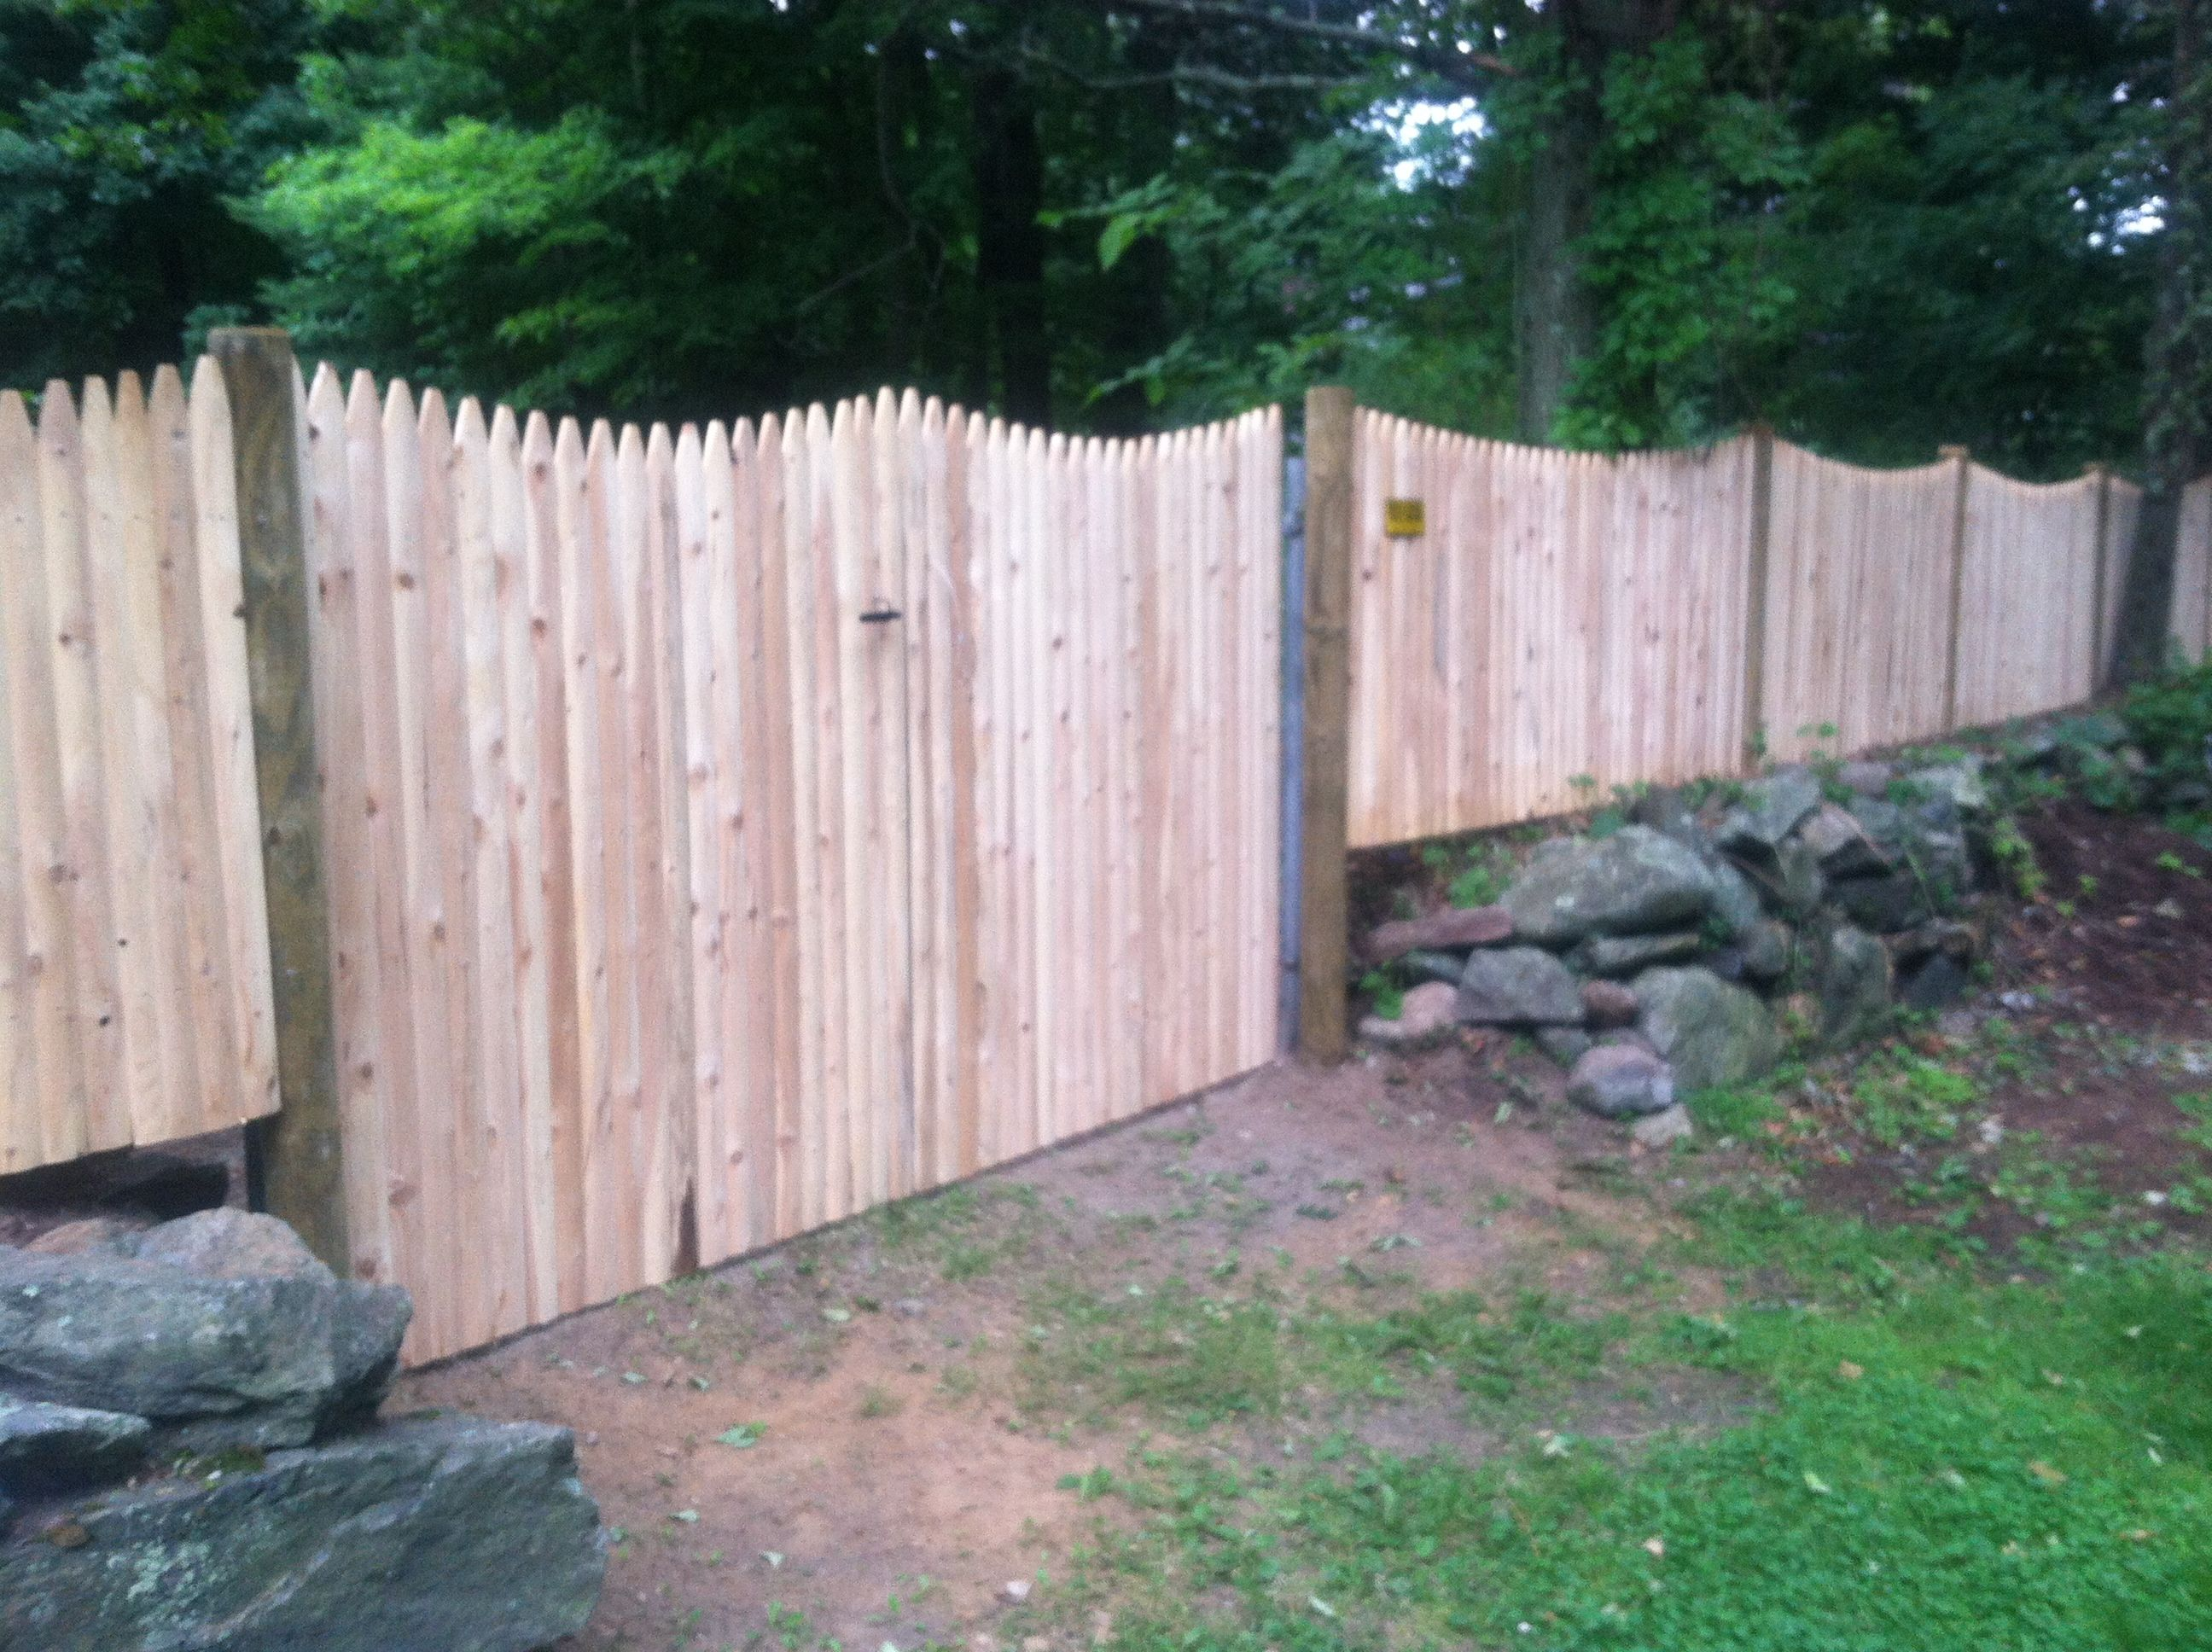 Scalloped Cedar Stockade Fence With Double Gate And Round Pressure Treated Posts Stockade Fence Fence Landscaping Outdoor Garden